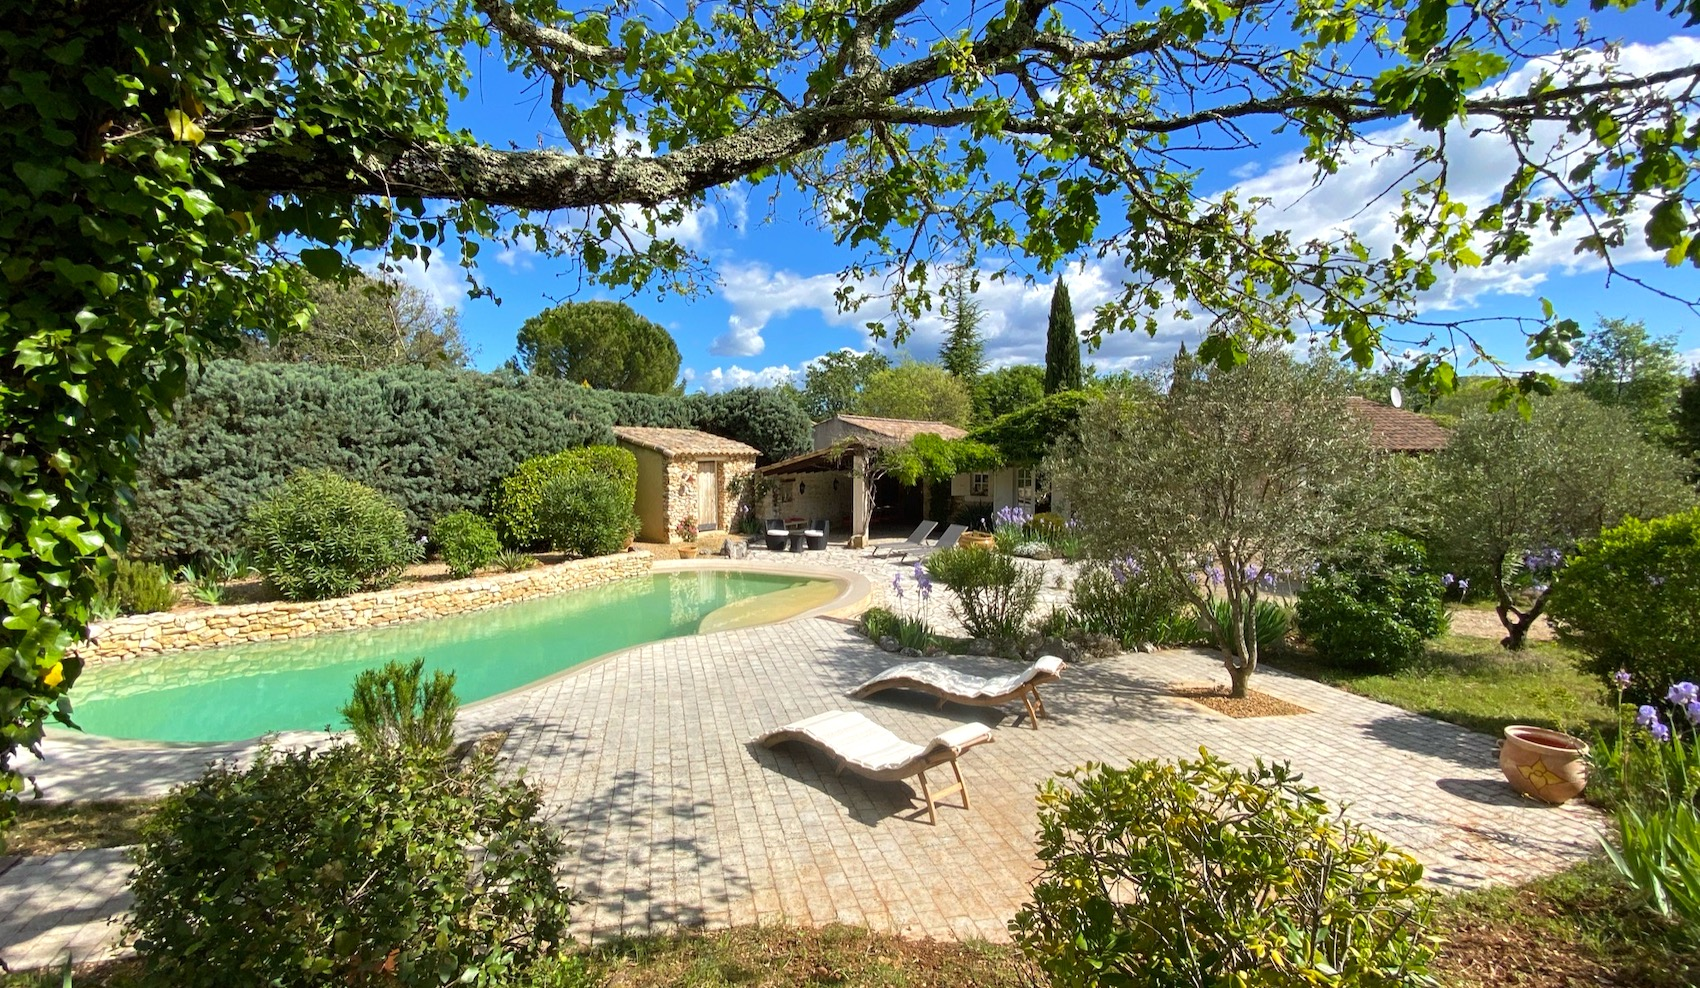 63194 : GOUDARGUES: Charming  stone house,198 m2 SH on 2900m2 of landscaped garden with heated pool